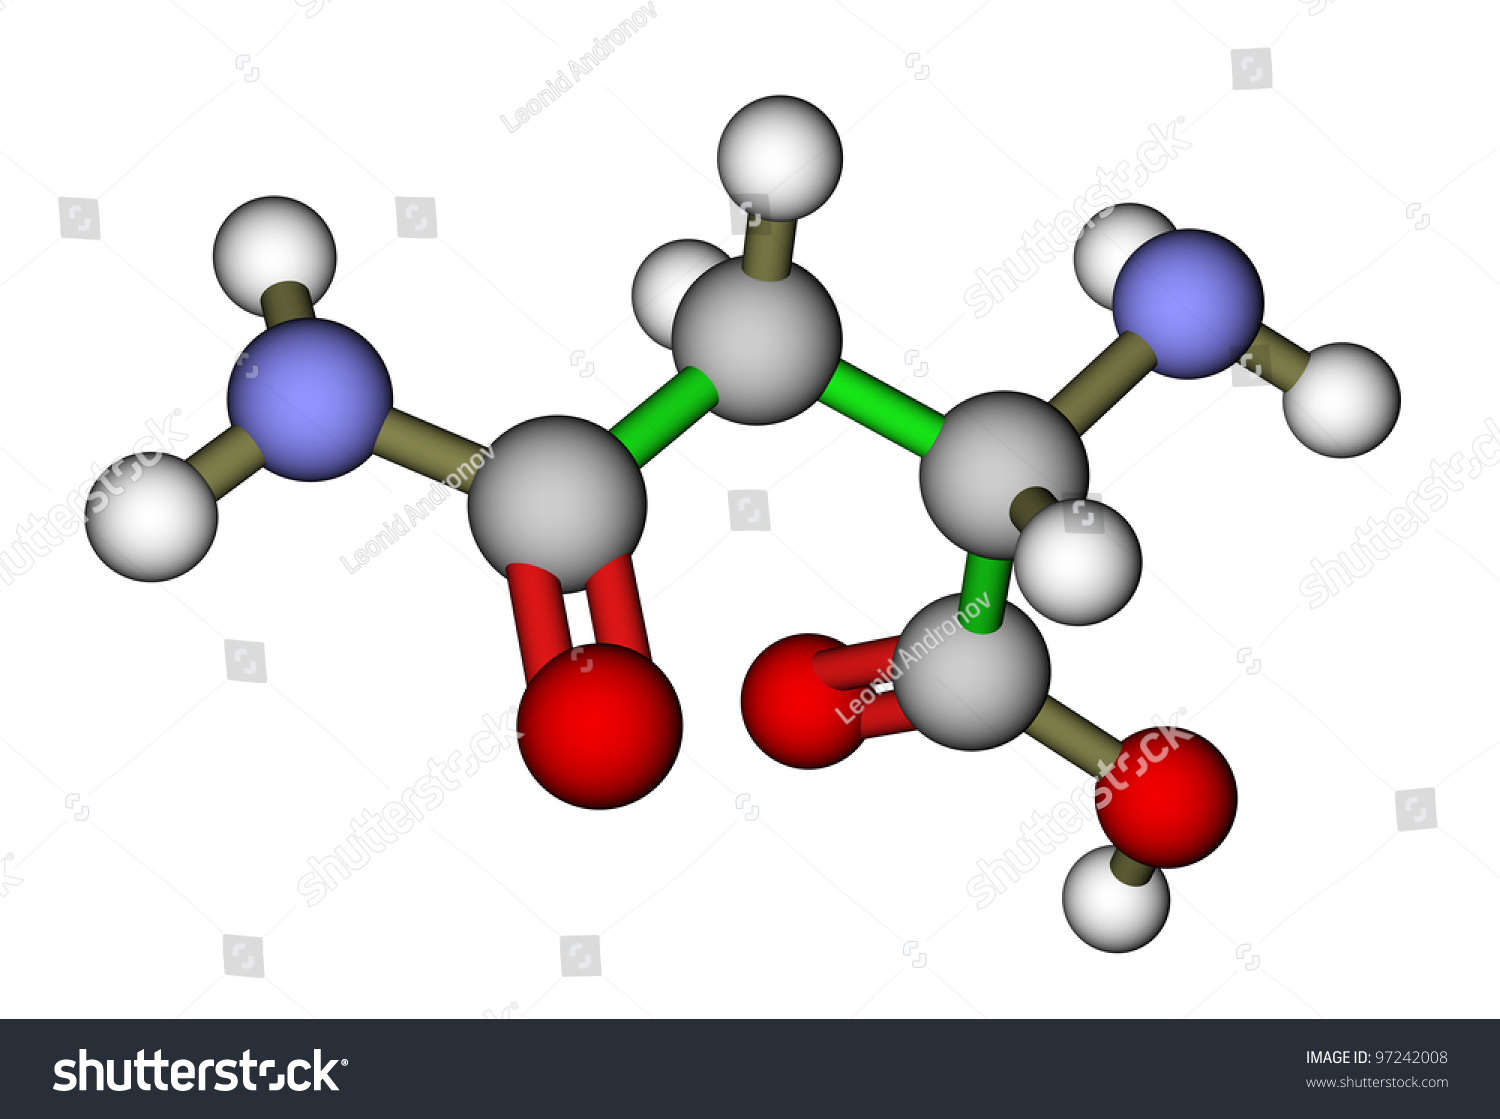 amino acid asparagine 3d molecular structure stock photo